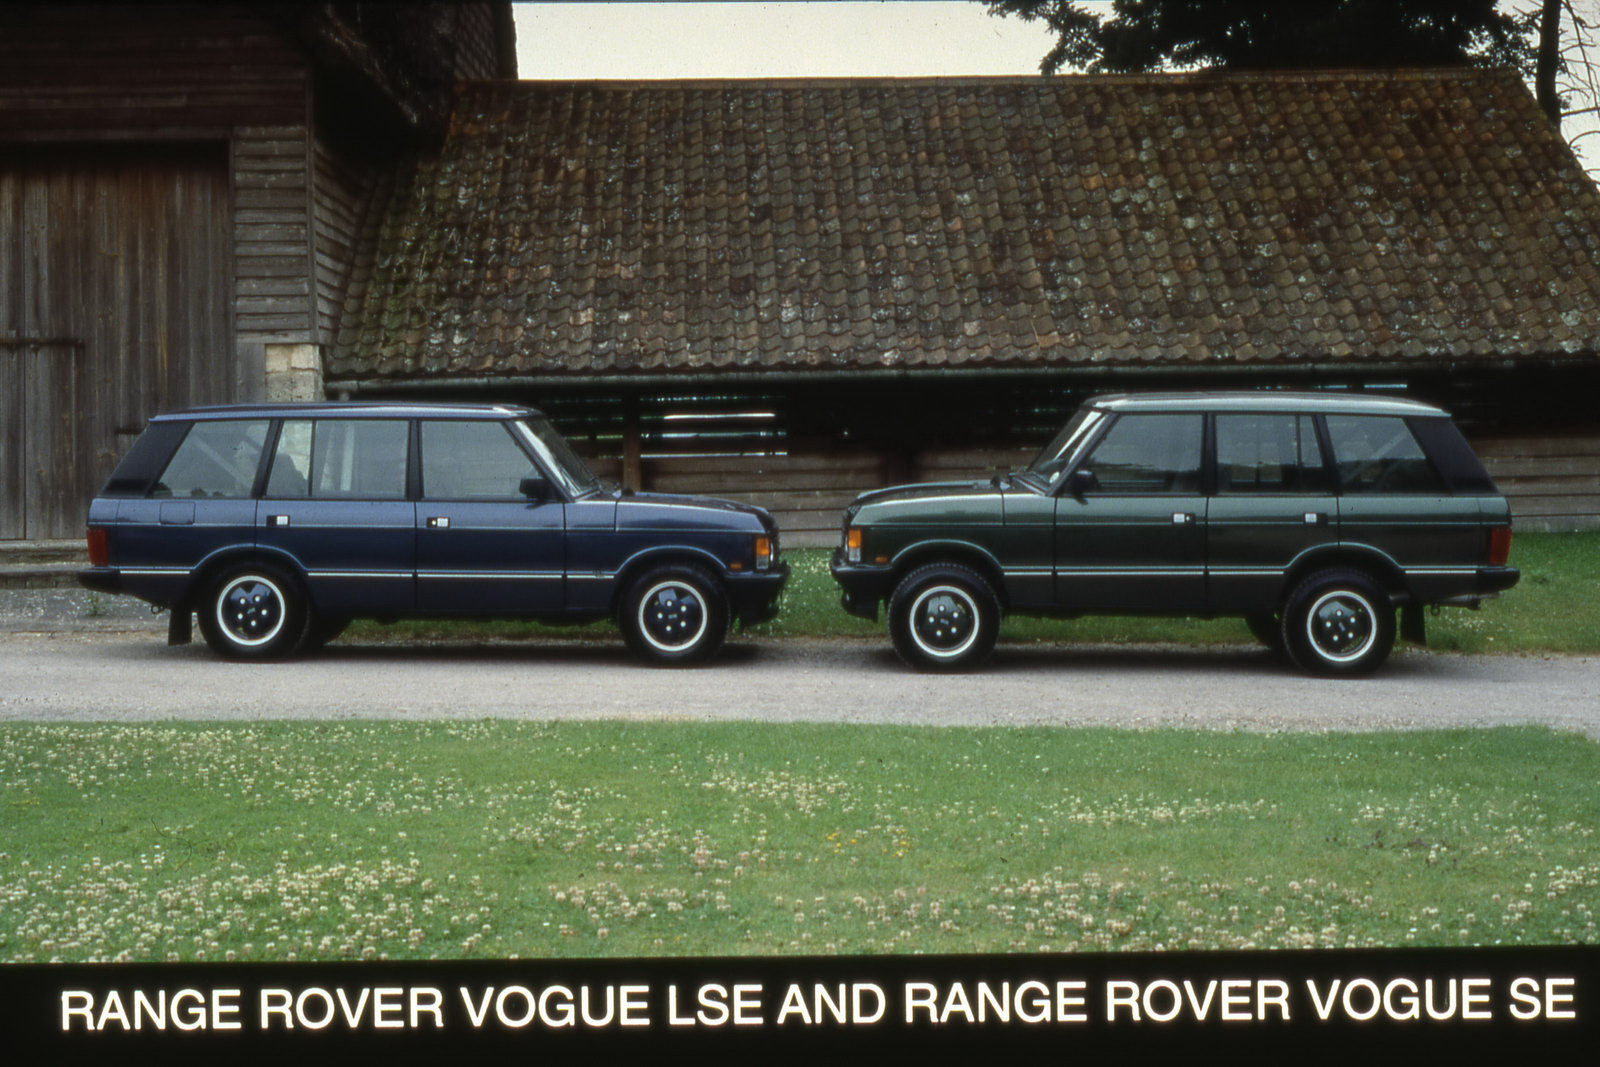 VIDEO: 40 Years Of The Range Rover In 1:40 Minutes